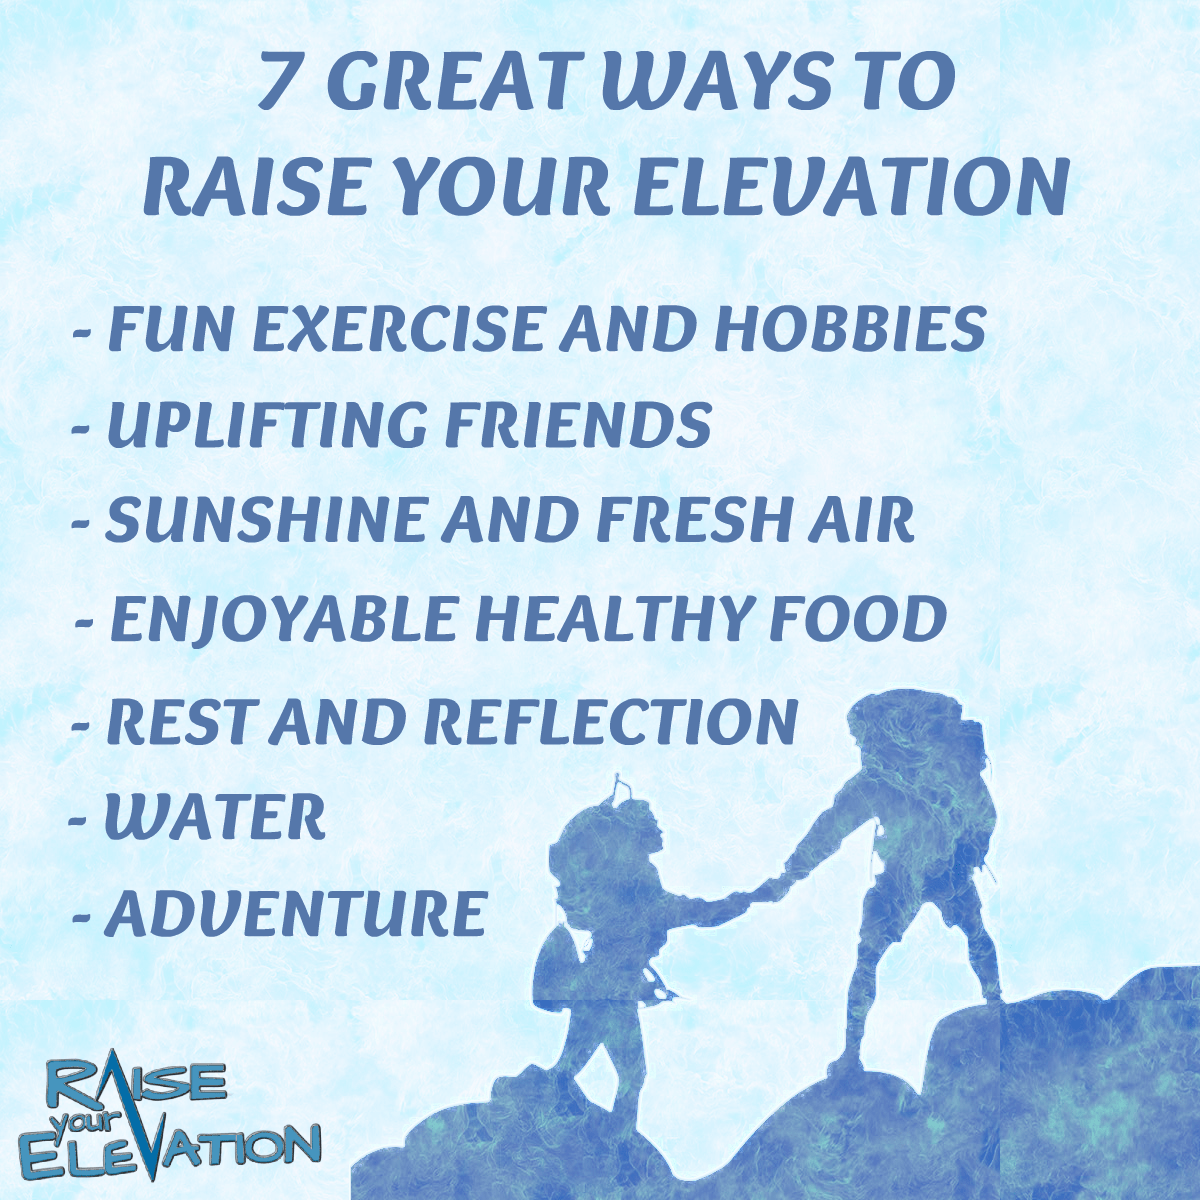 7 Ways to Raise Your Elevation